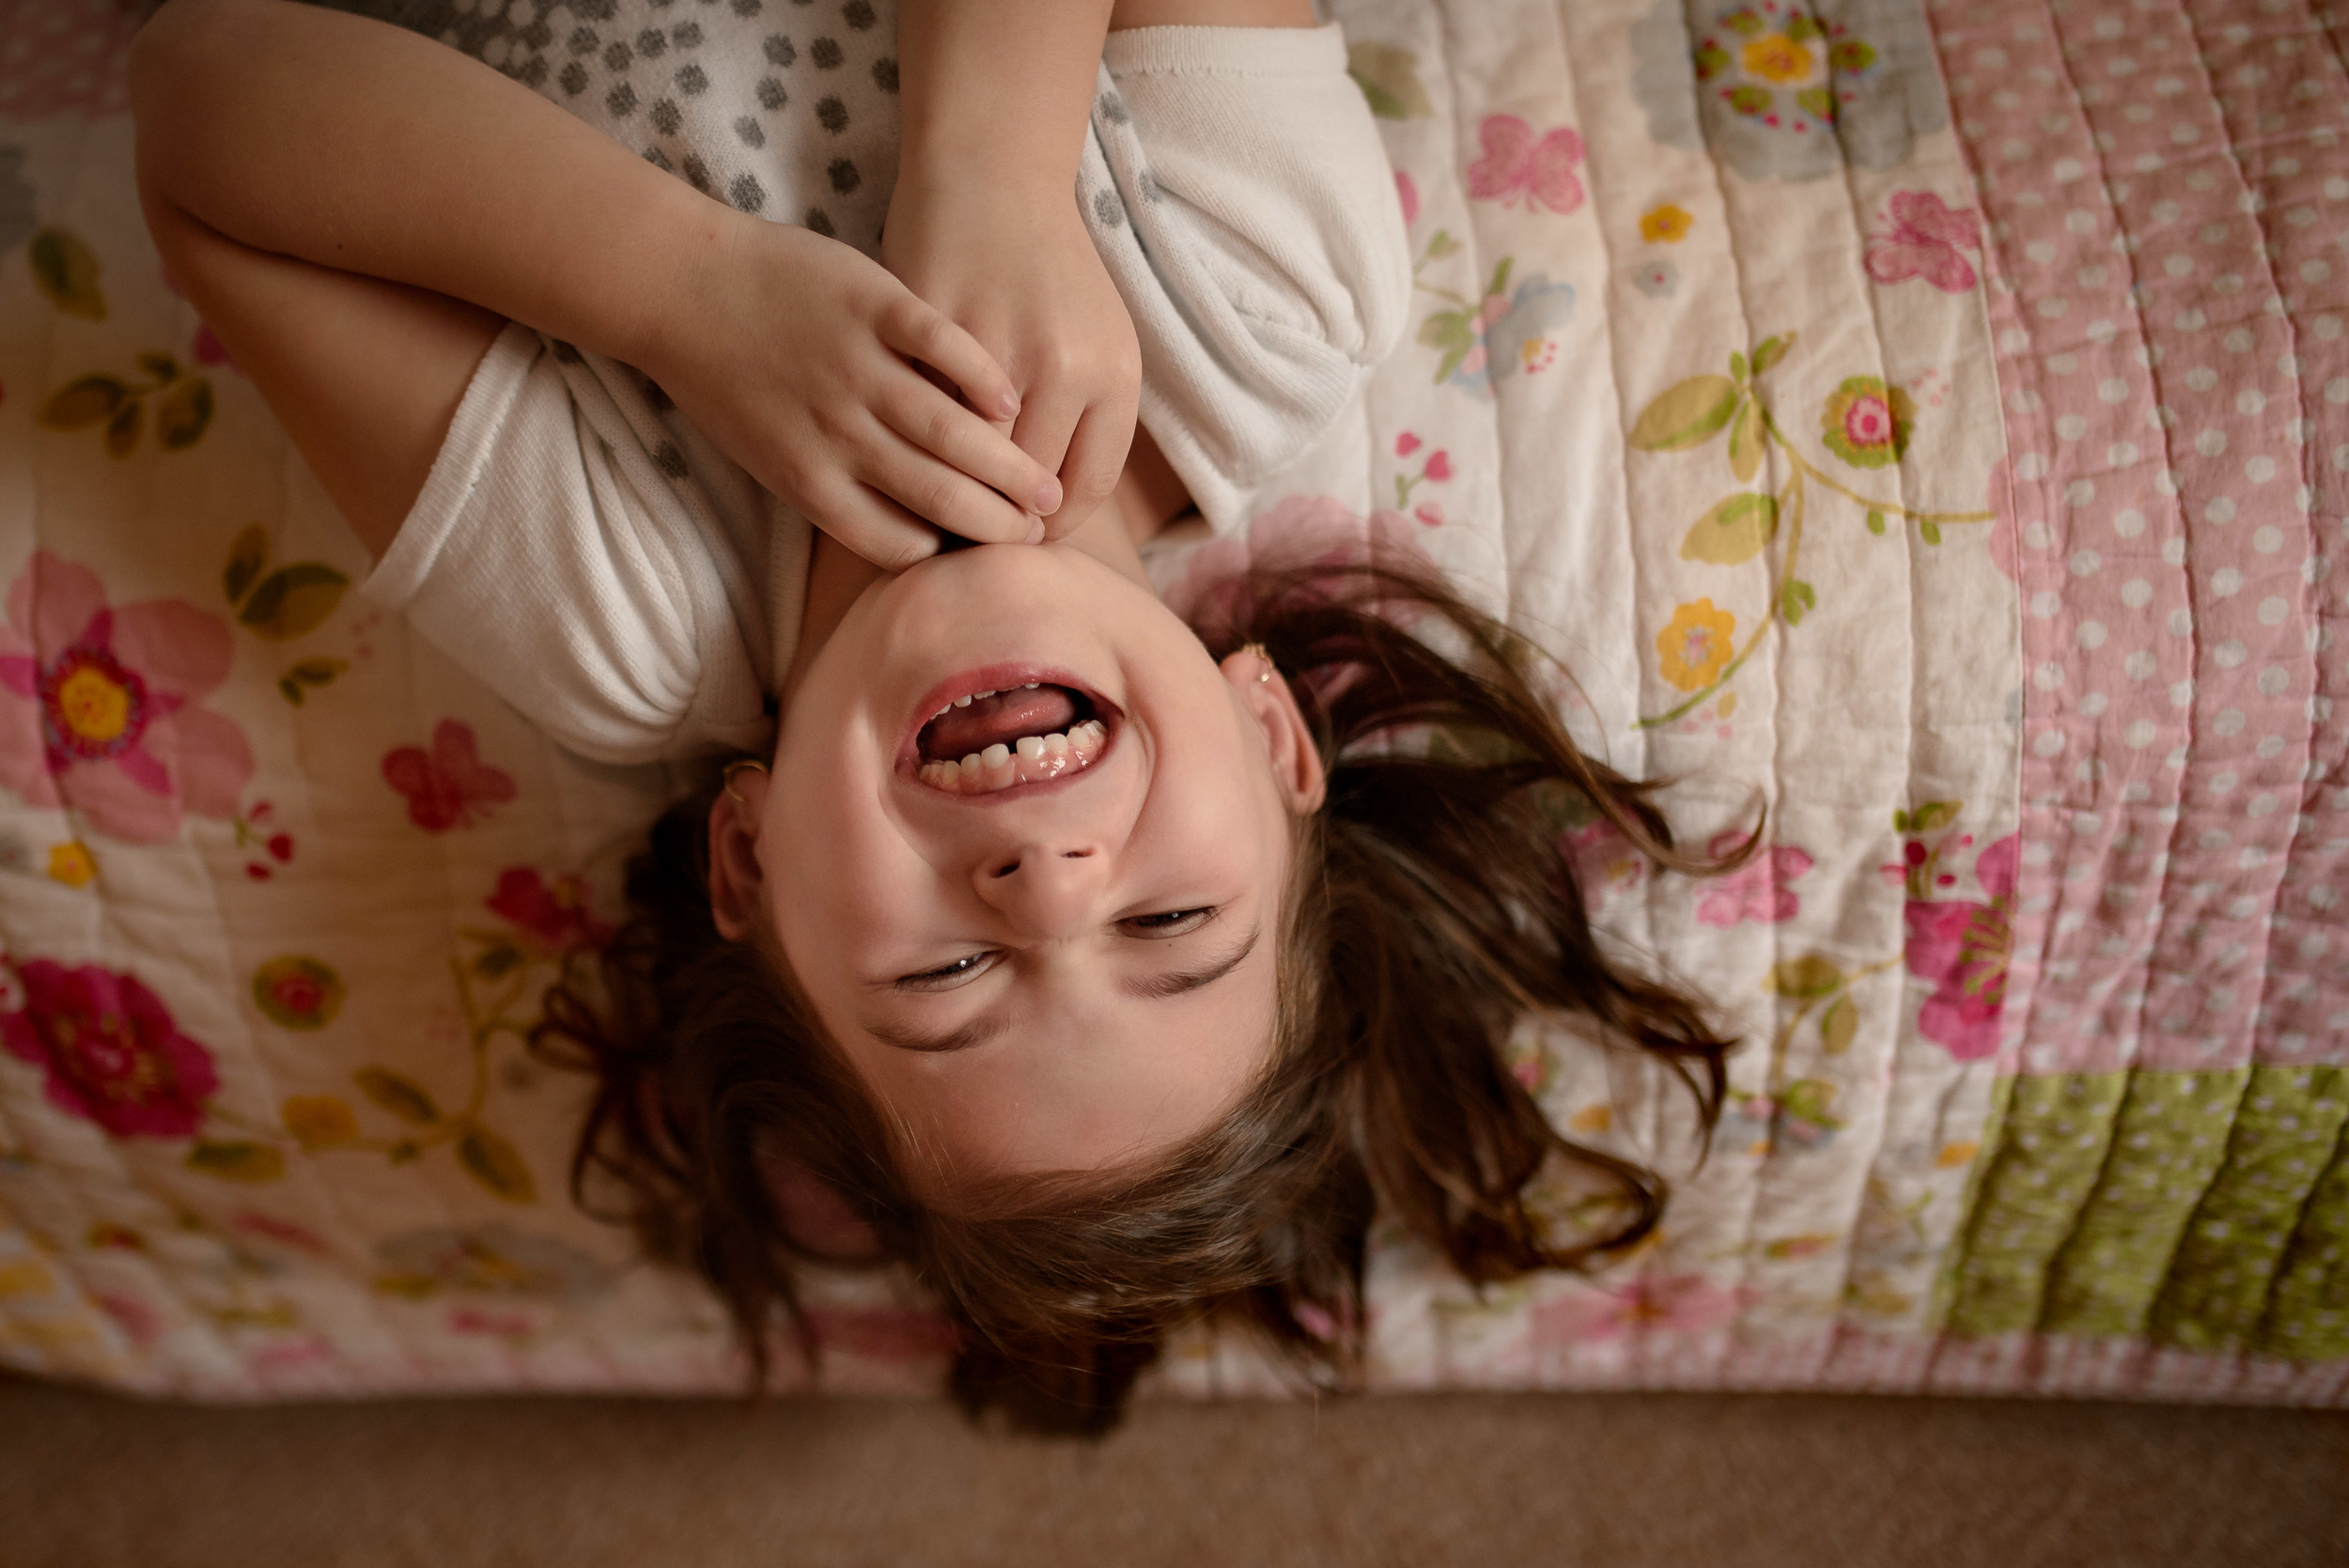 Daughter Laughing On Bed